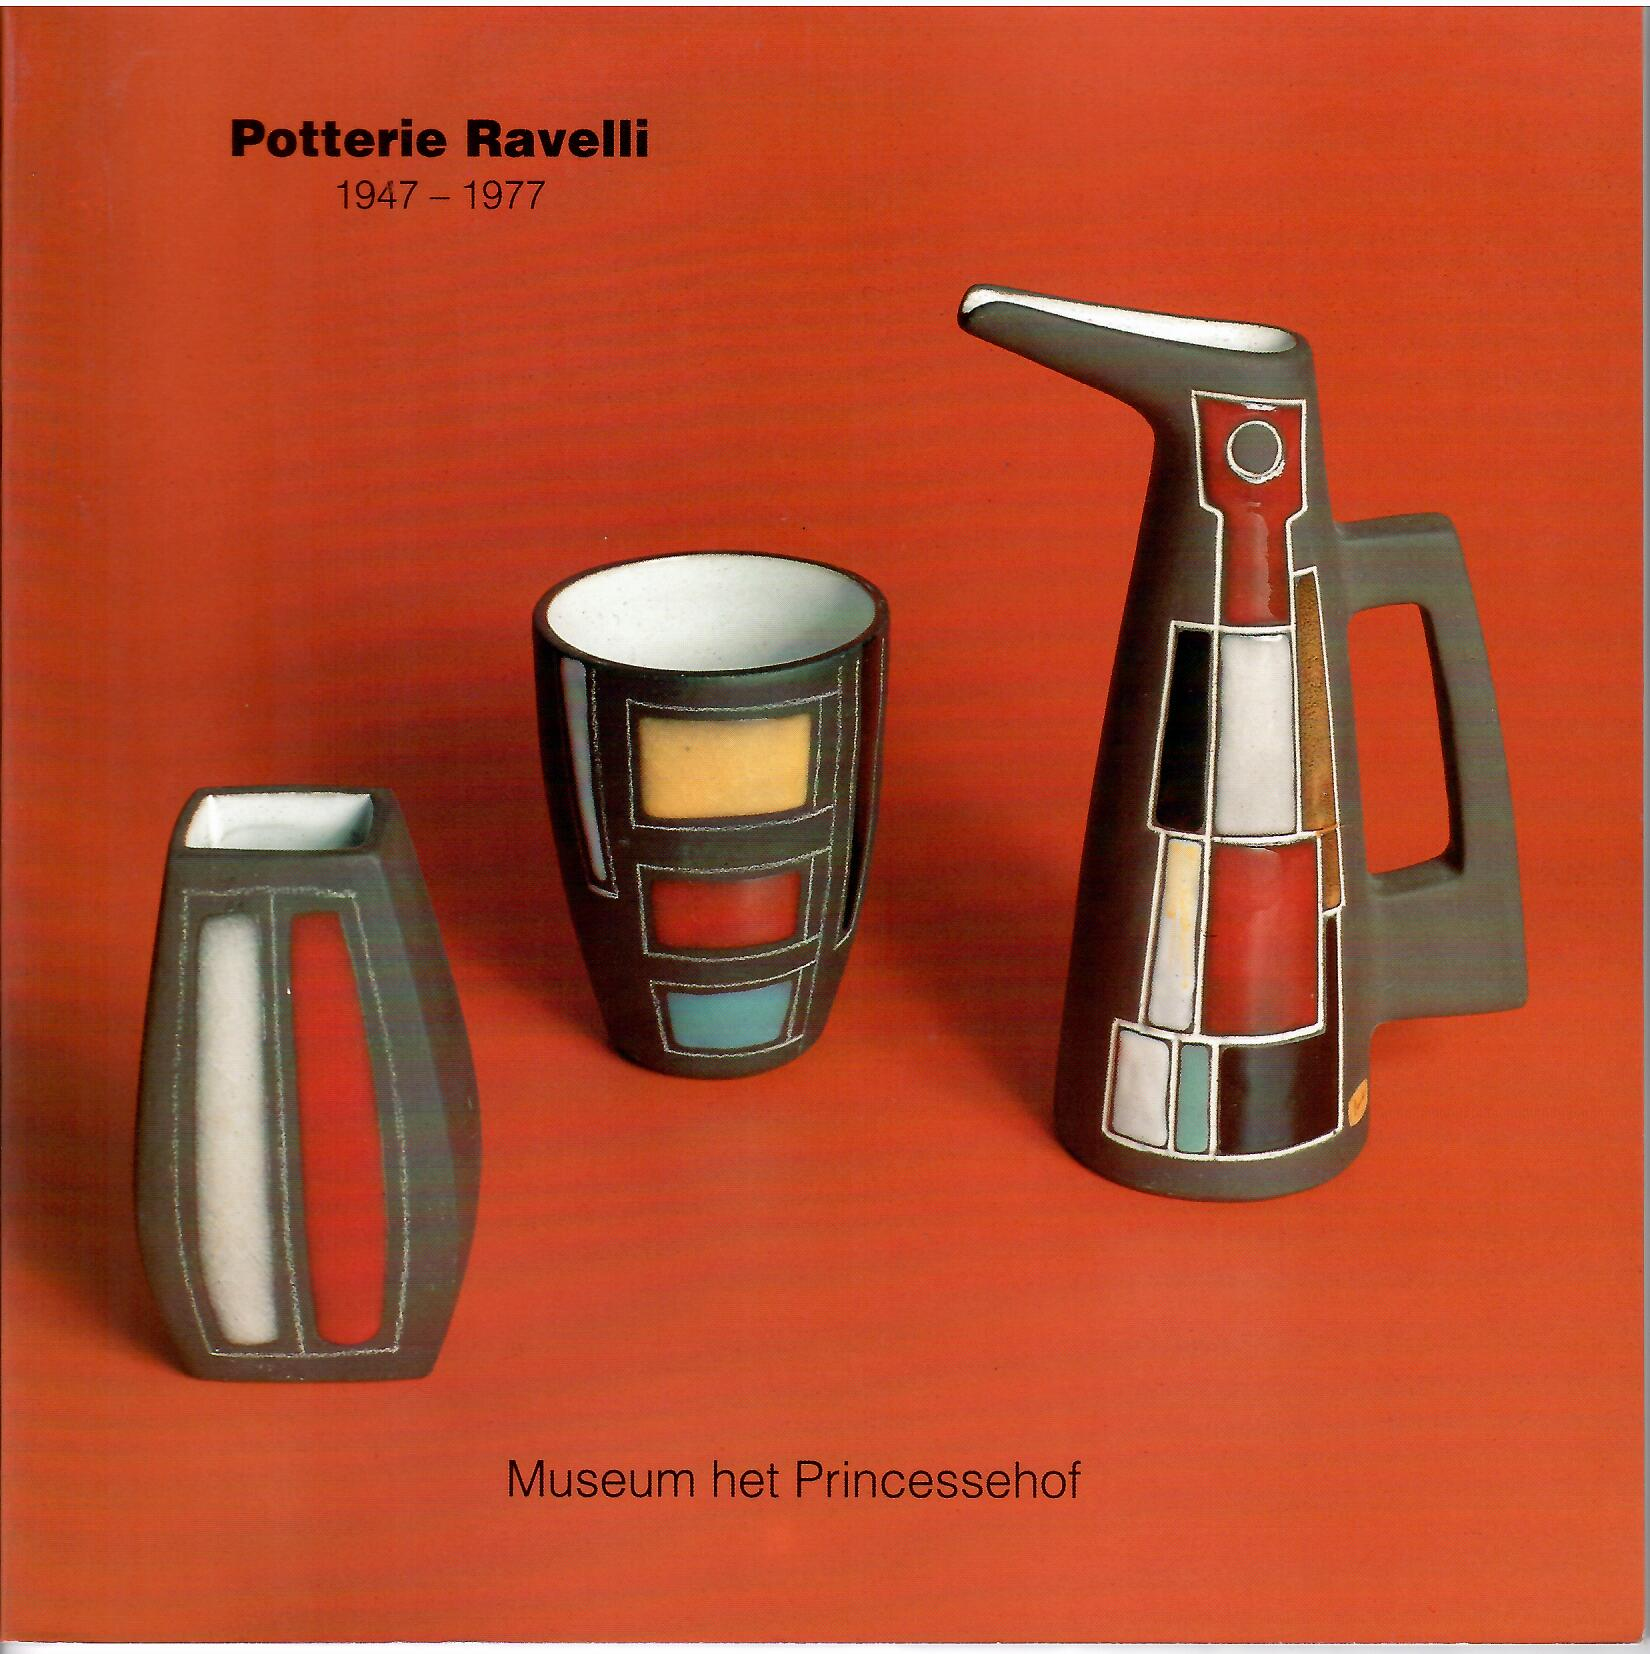 Image for 1947 - 1977; POTTERIE RAVELLI